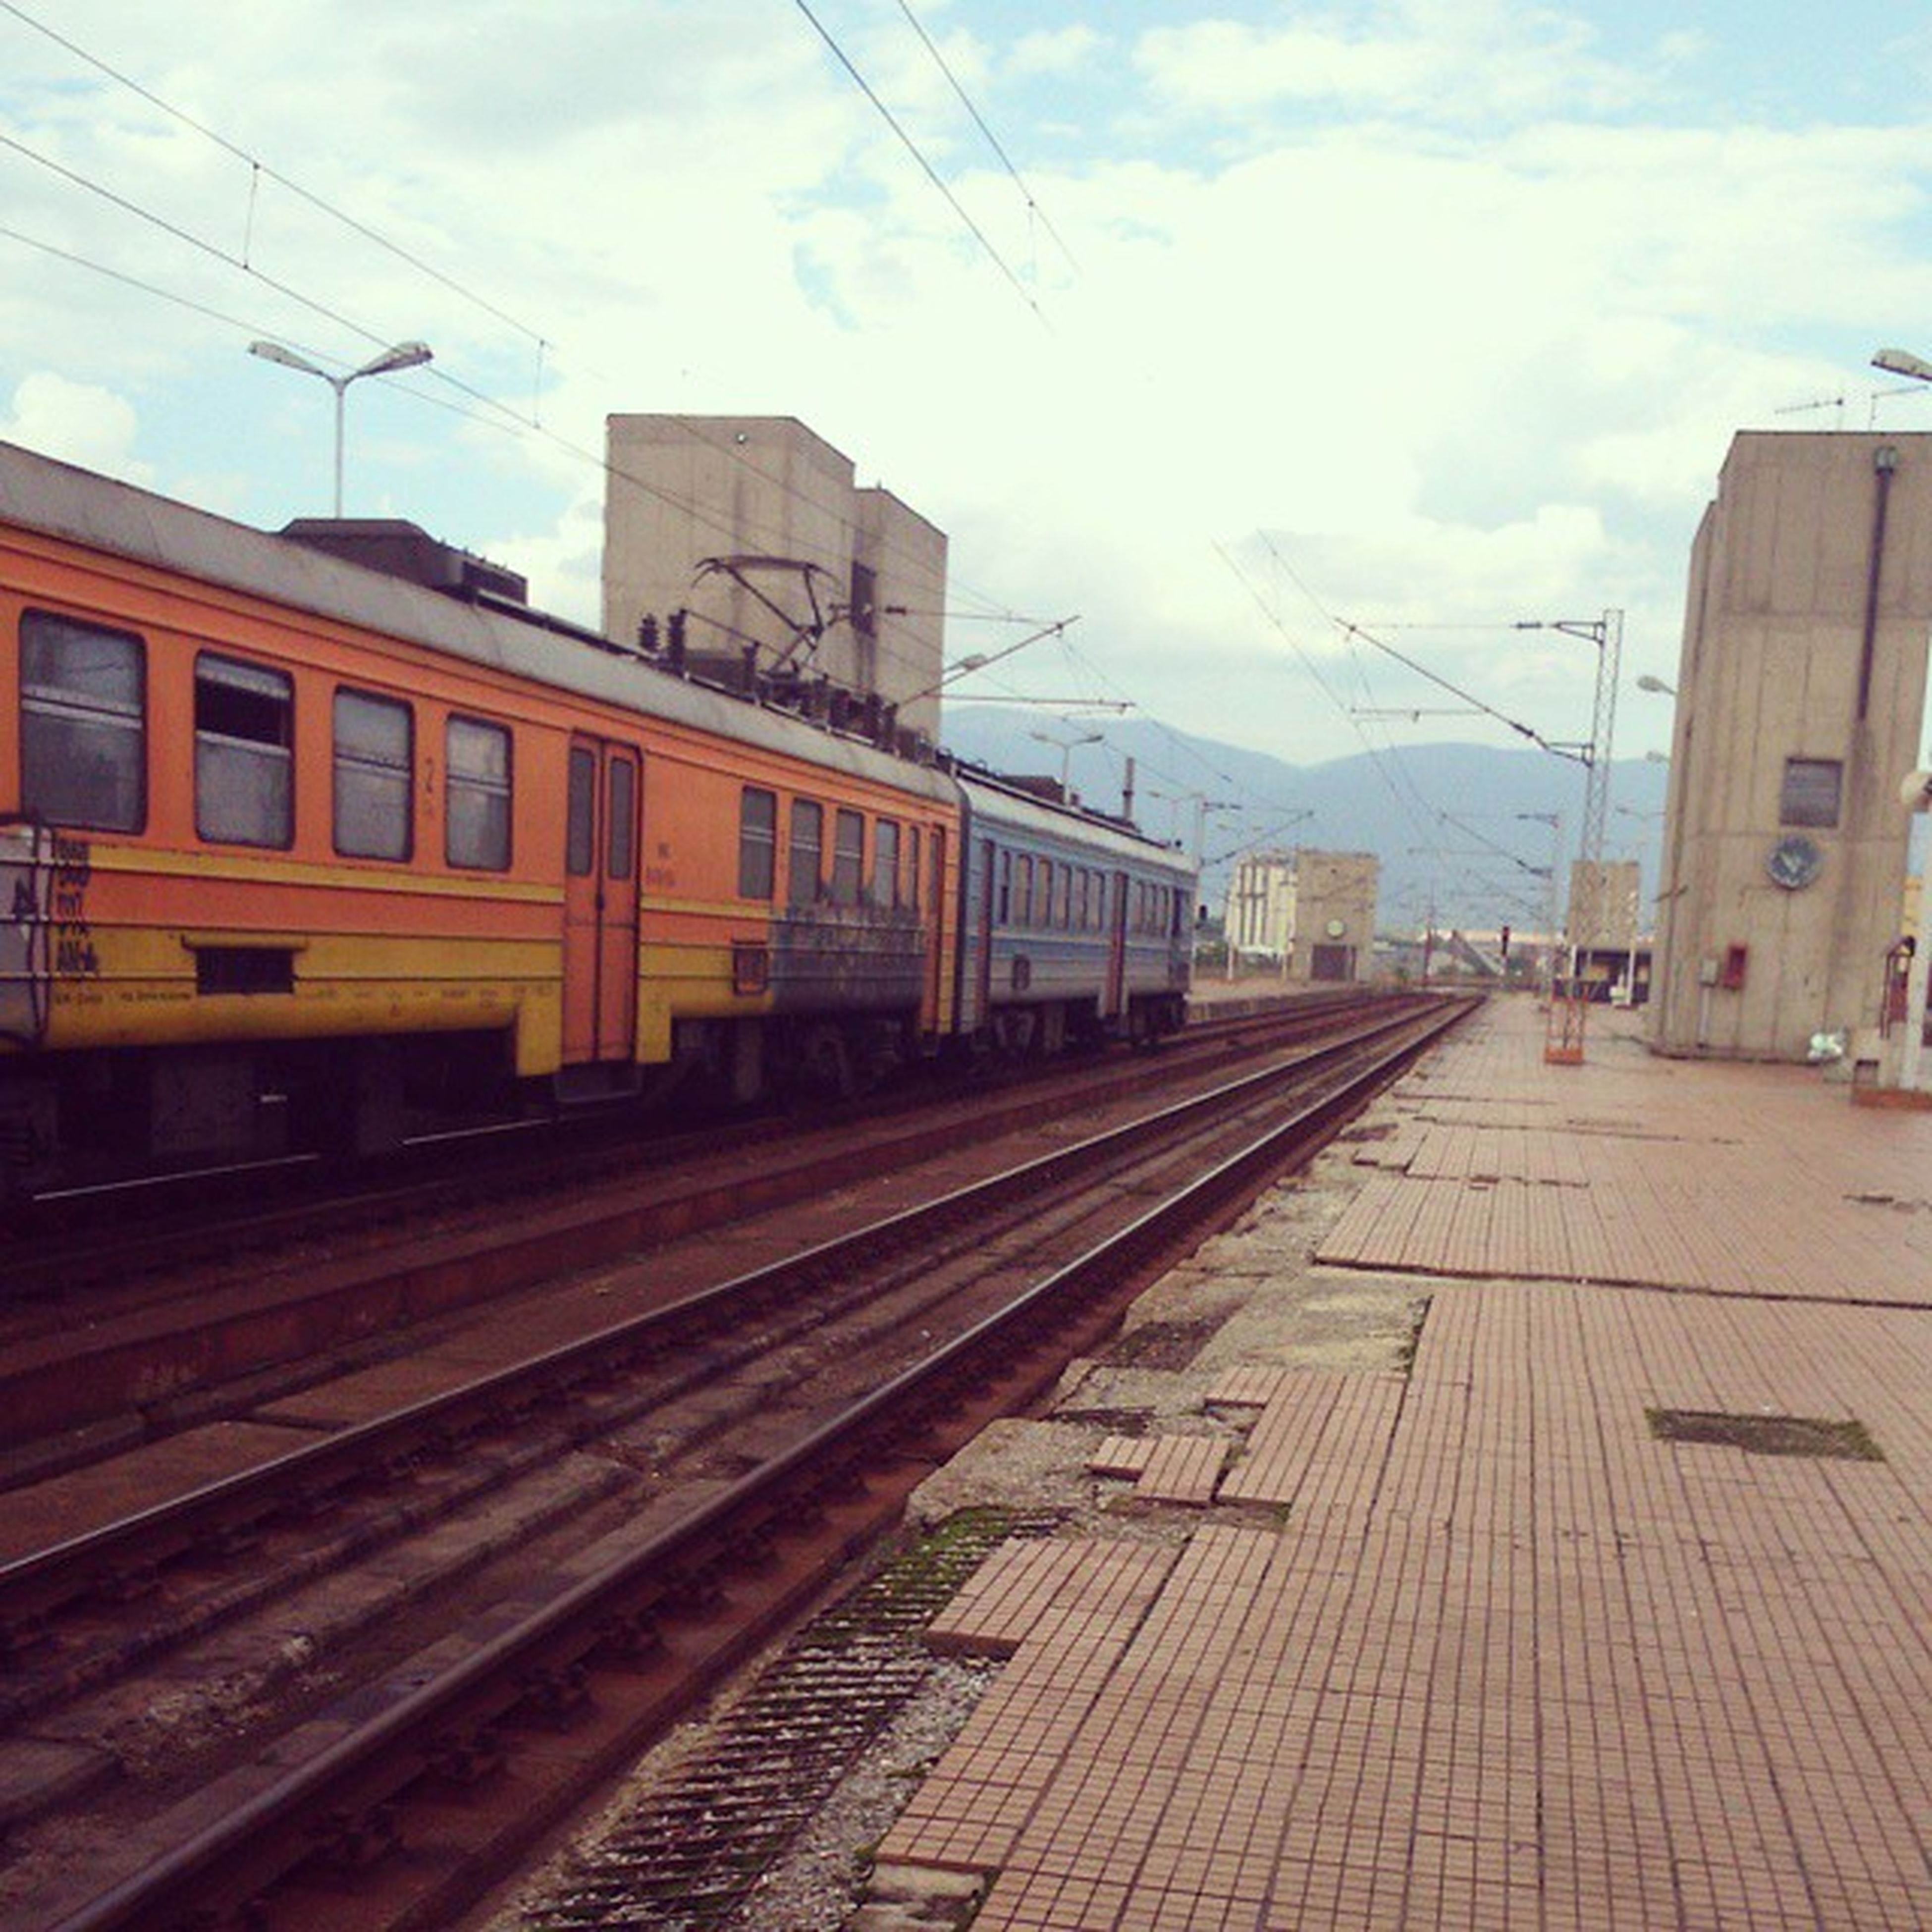 railroad track, rail transportation, public transportation, building exterior, railroad station, railroad station platform, transportation, built structure, architecture, power line, sky, city, the way forward, train - vehicle, diminishing perspective, railway track, tramway, electricity pylon, cable, mode of transport